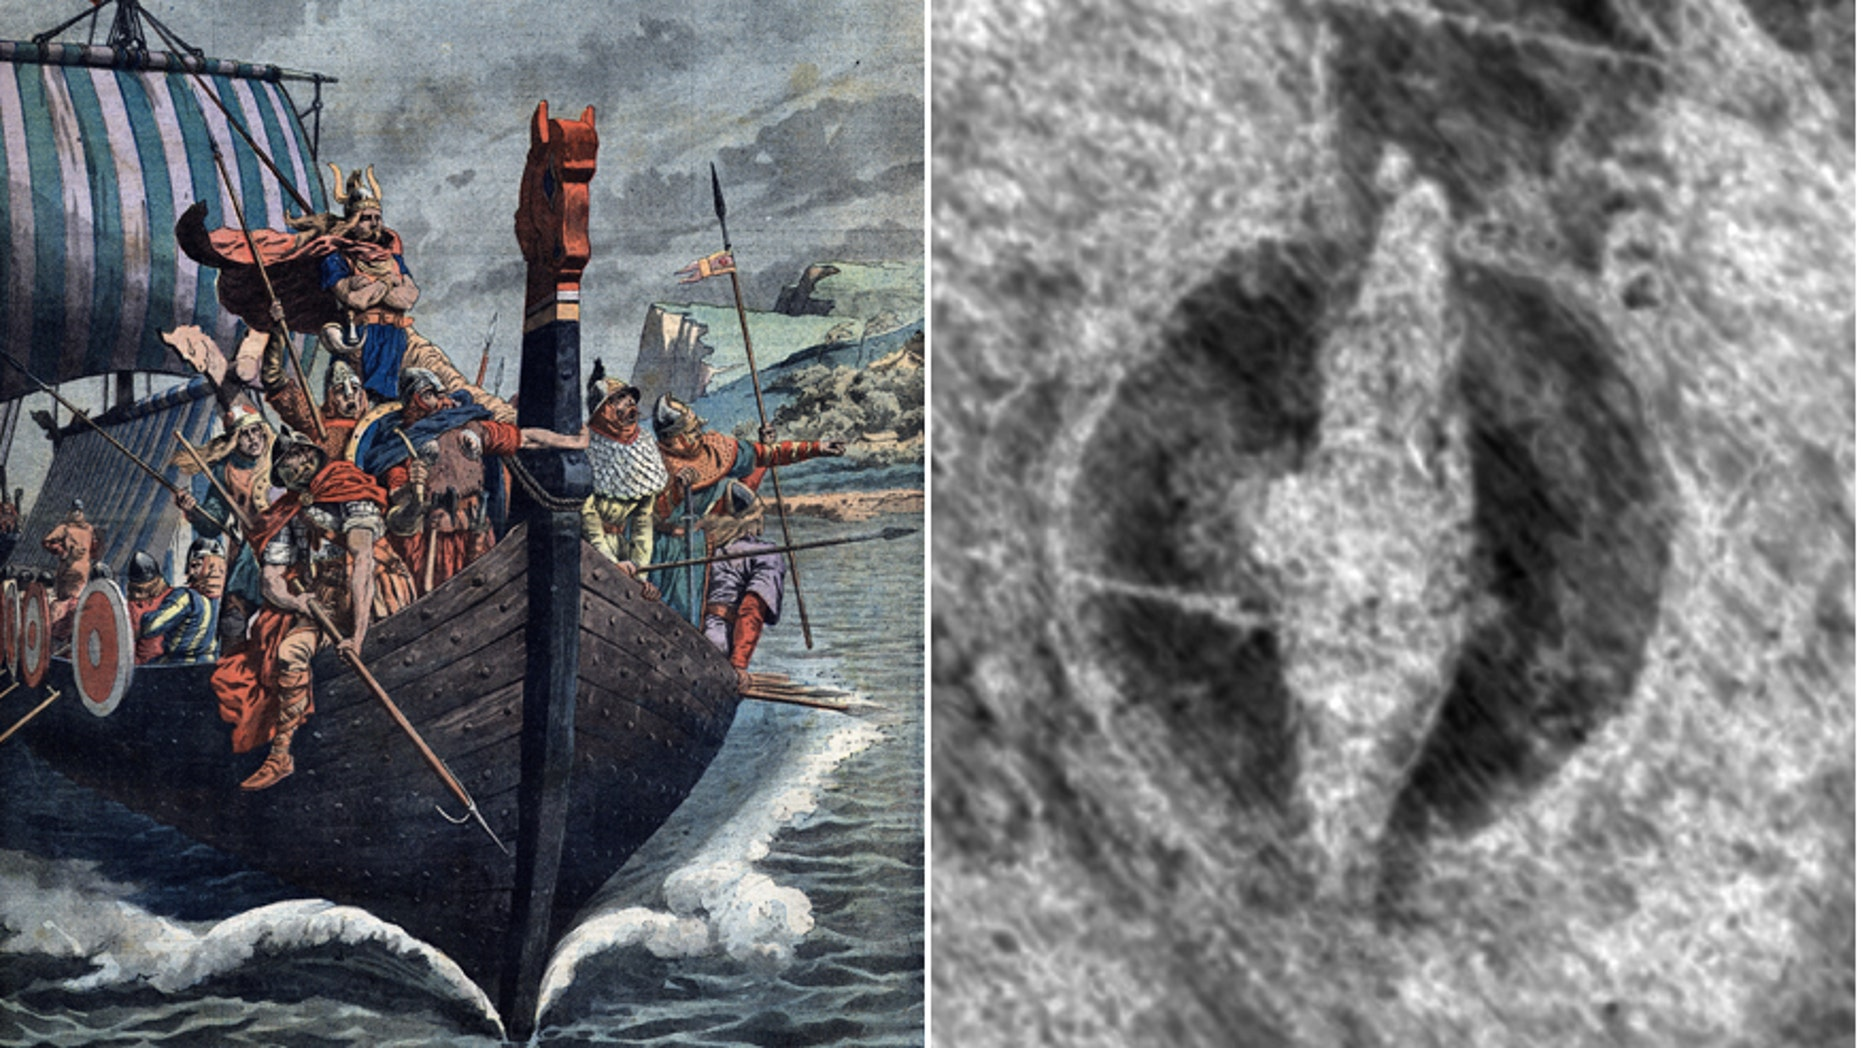 Viking ship burial discovered in Norway just 50cm underground